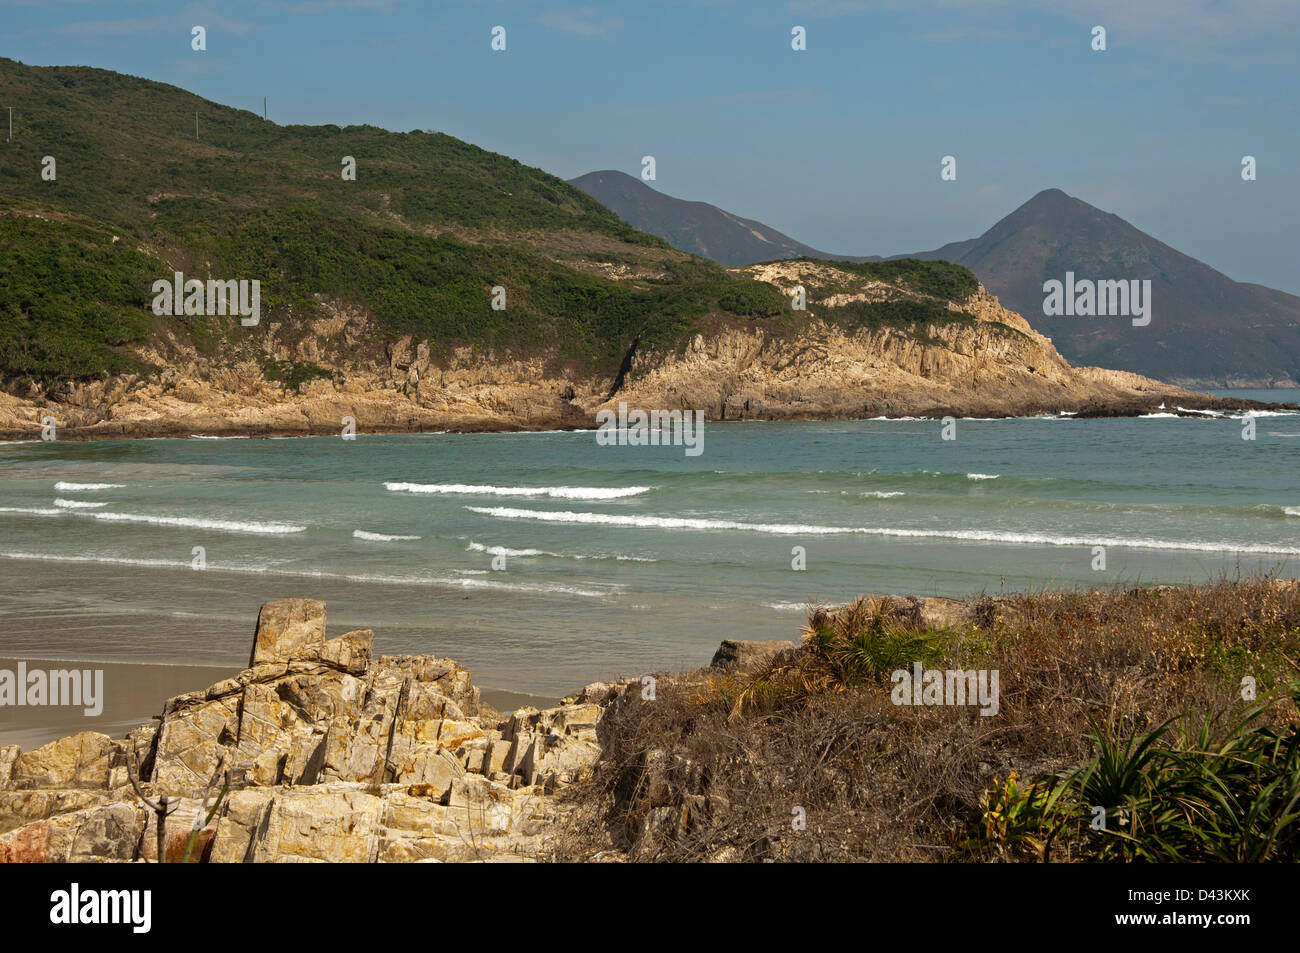 Coastal landscape with bay in the Sai Kung East Country Park along the South China sea, New Territories, Hong Kong - Stock Image